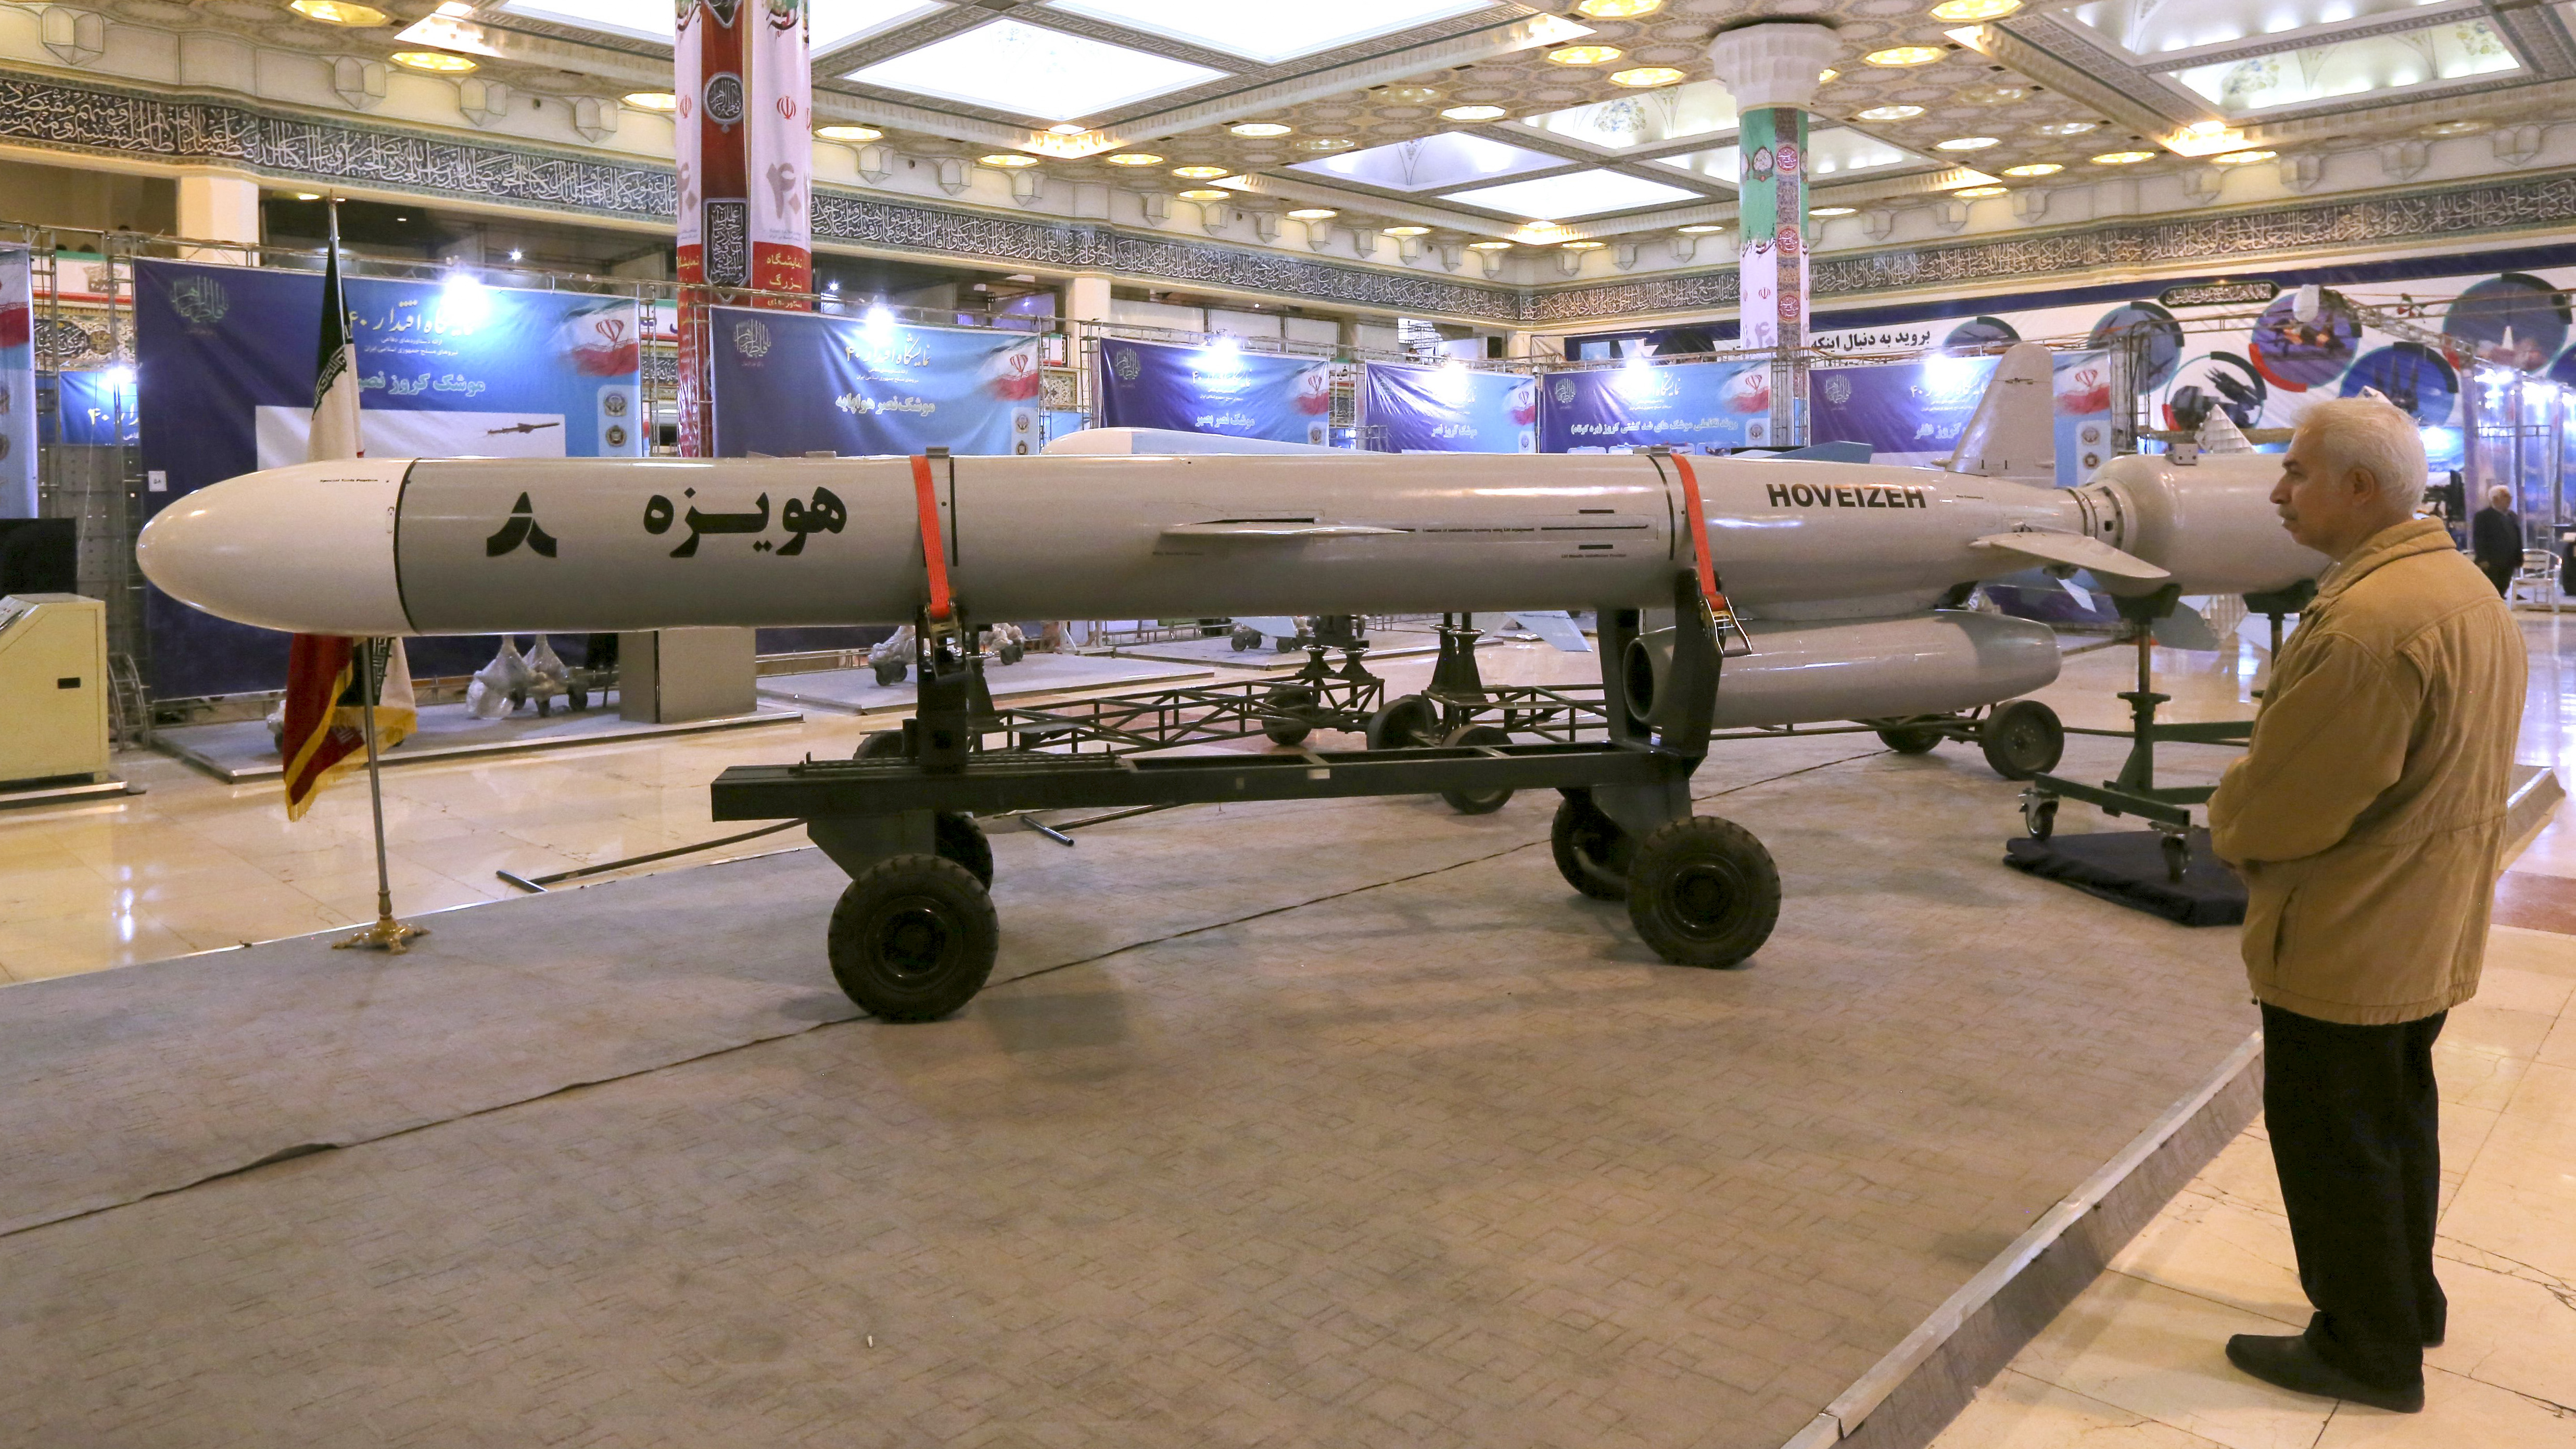 Hoveizeh, Iran's new cruise missile is shown during an exhibition in the capital Tehran on February 2, 2019. - Iran announced the successful test of a new cruise missile with a range of over 1,350 kilometers today, state TV reported. (ATTA KENARE/AFP/Getty Images)